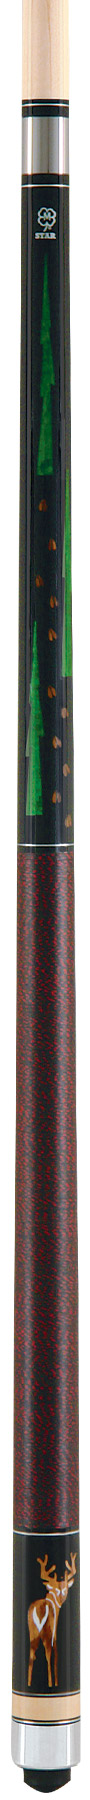 s34 Star Pool Cue by McDermott